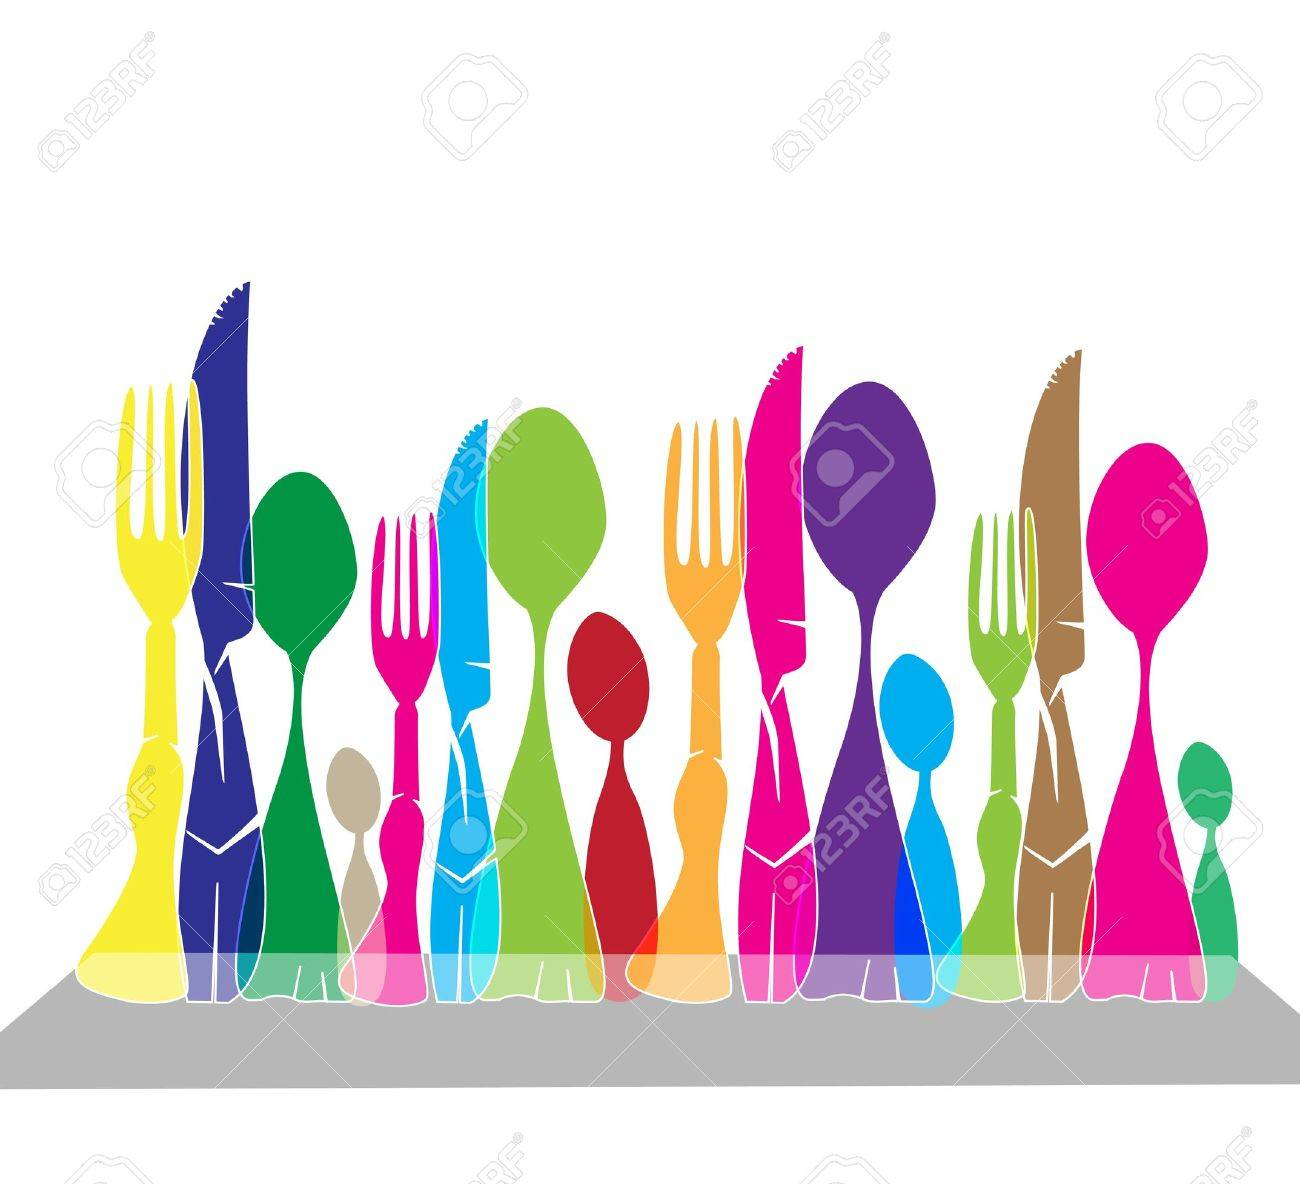 At Table Stock Vector - 13694990